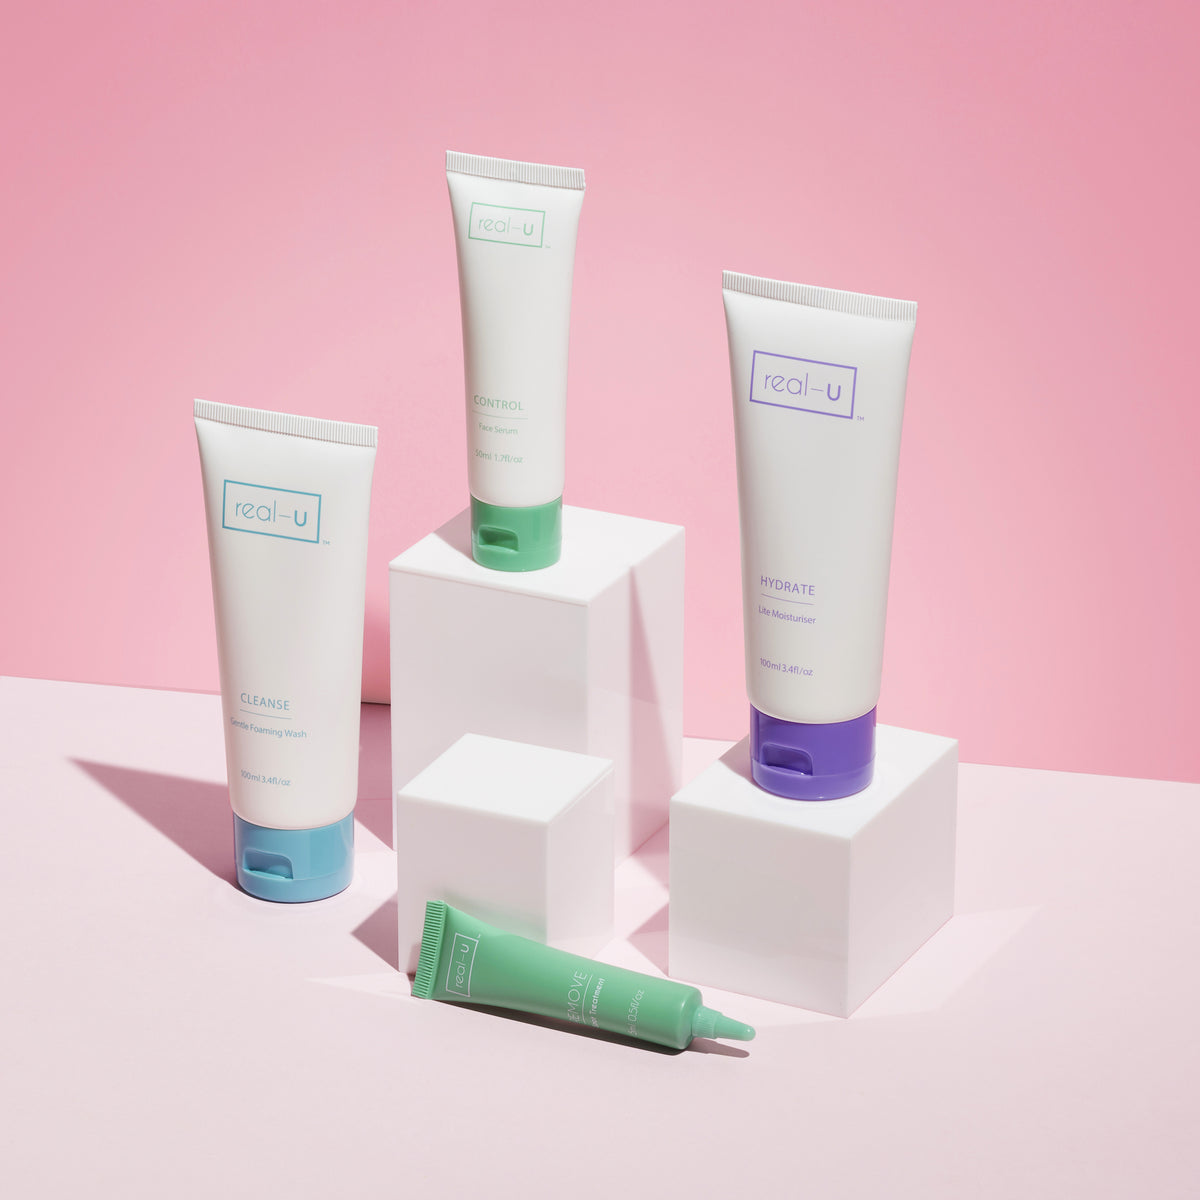 The real-u Luxe Kit contains everything you need to clear acne and pimples fast